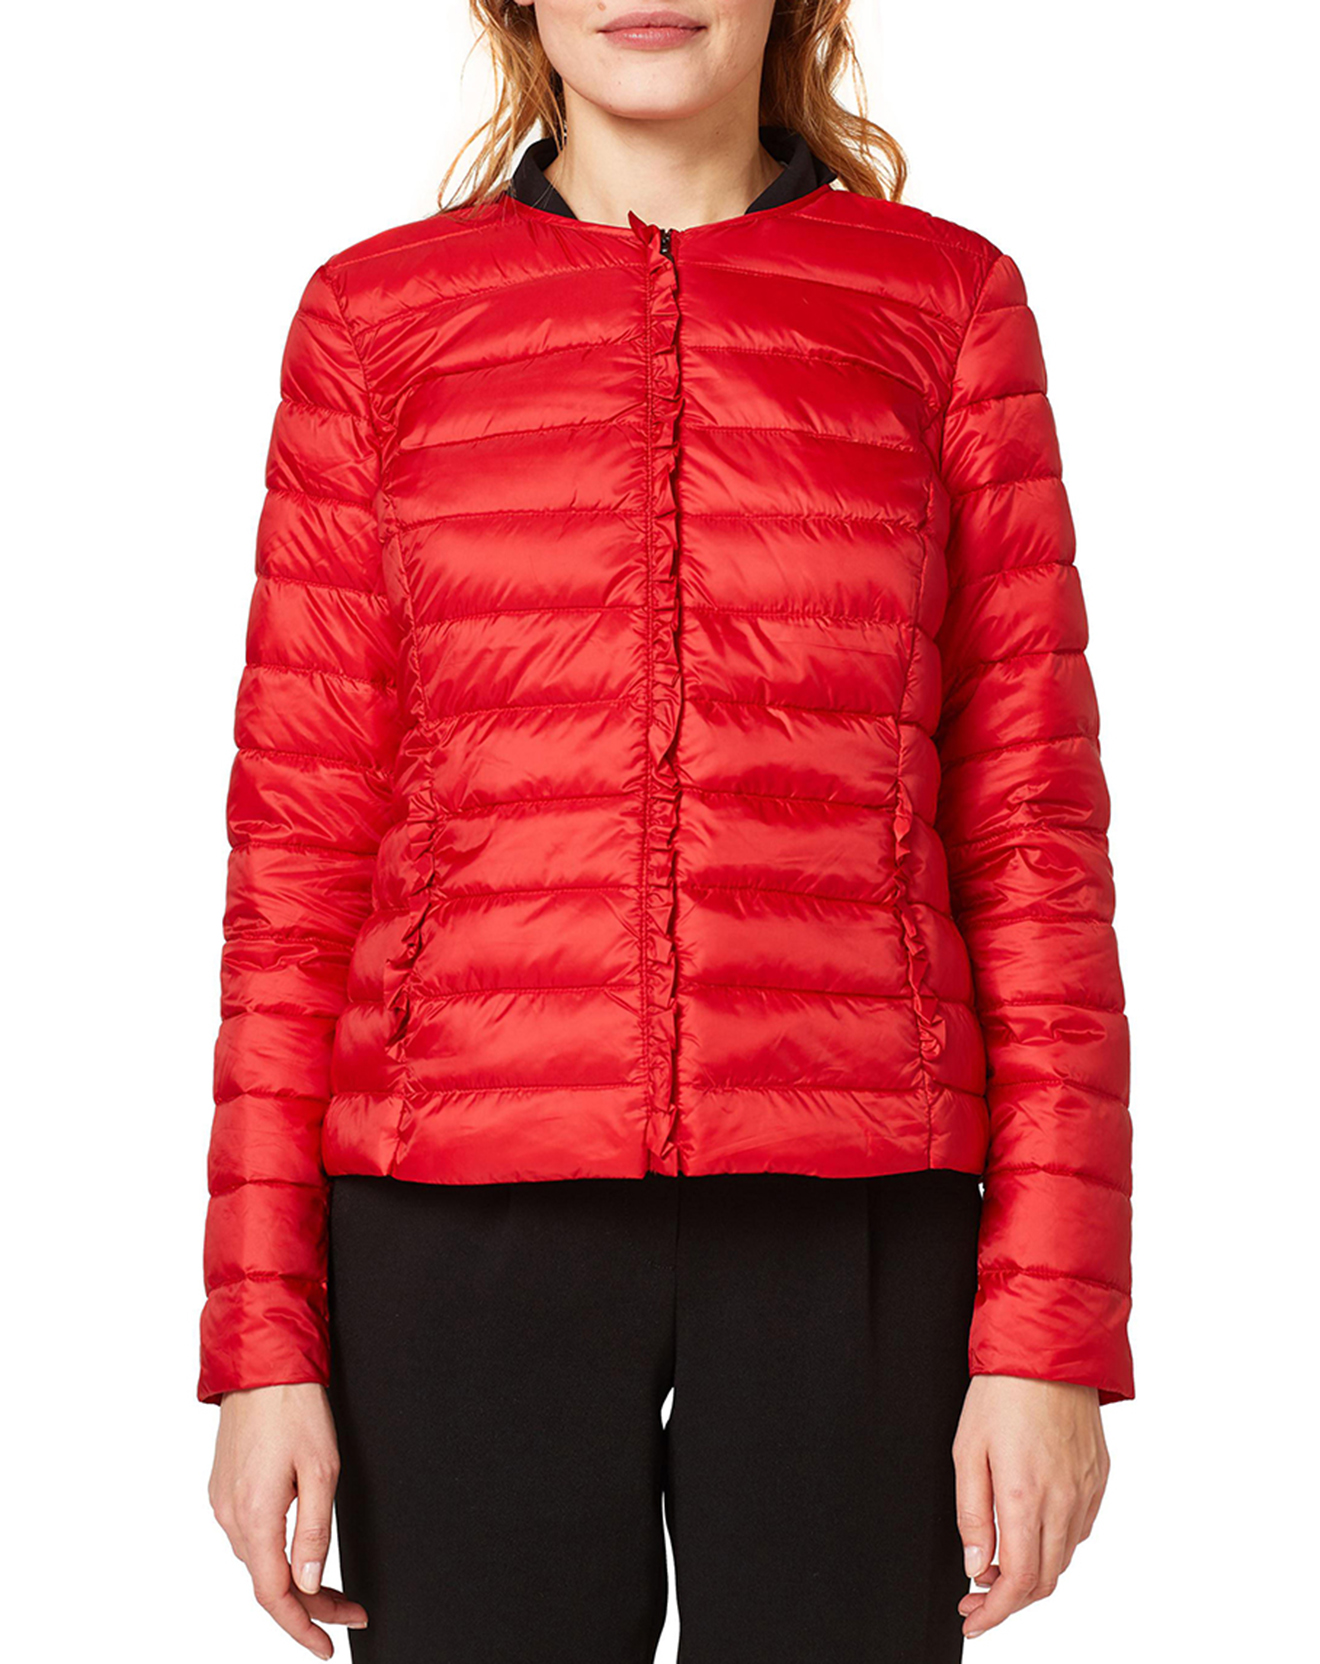 Doudoune Light rouge - Esprit - Modalova